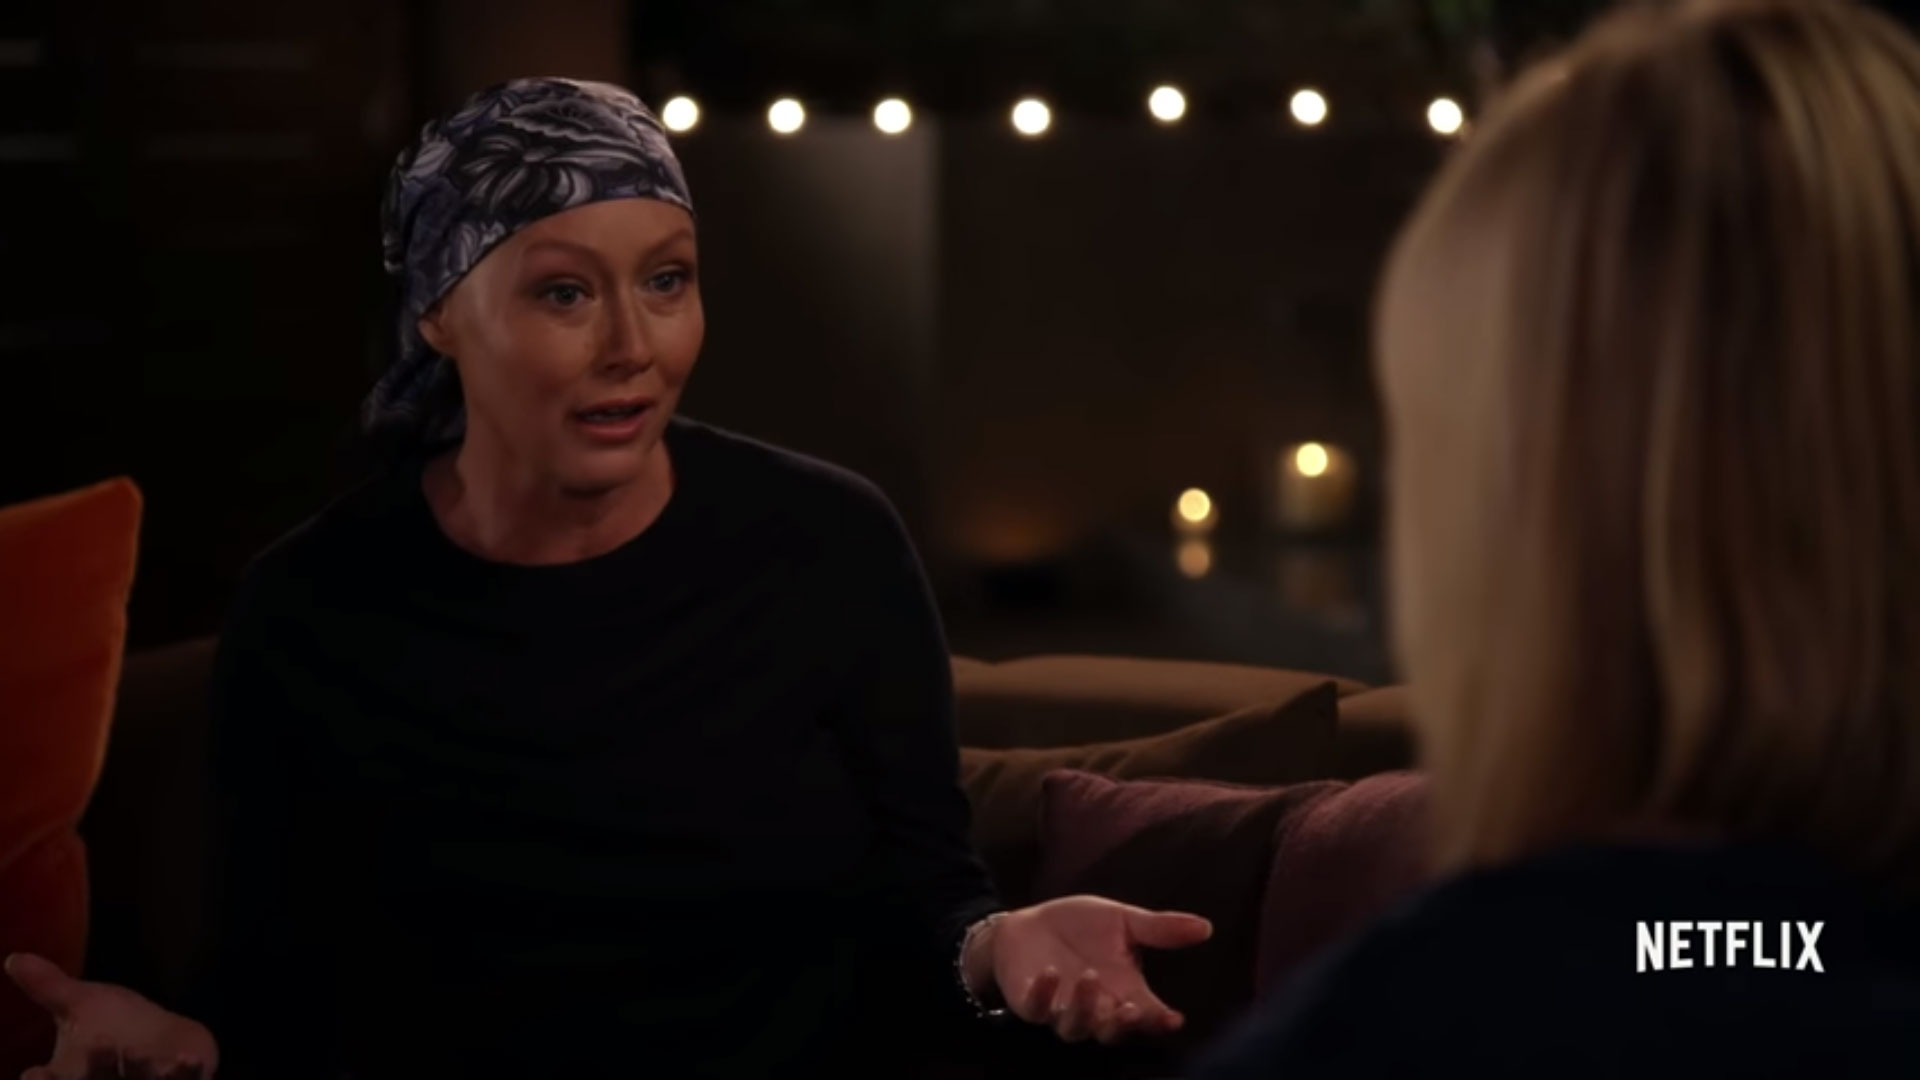 Shannen Doherty leaves Chelsea Handler in tears after discussing her cancer struggle